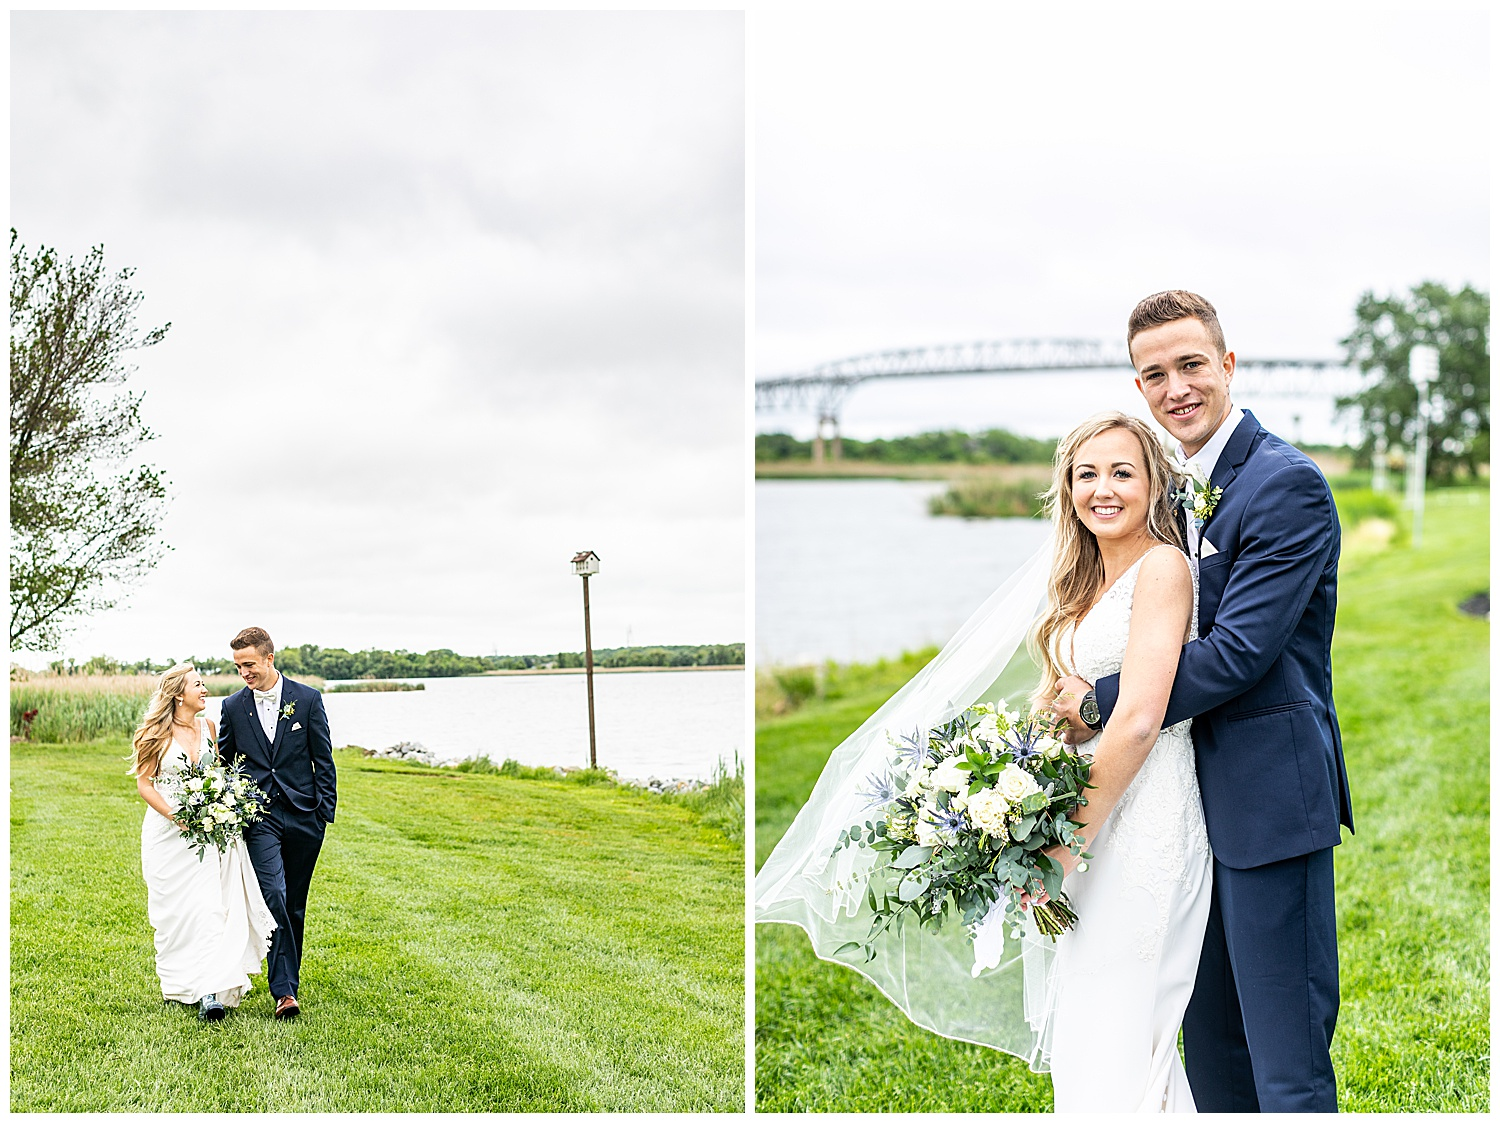 Aubrie Brendan Thousand Acre Farm Rainy Day Wedding Wedding Living Radiant Photography photos edited_0081.jpg